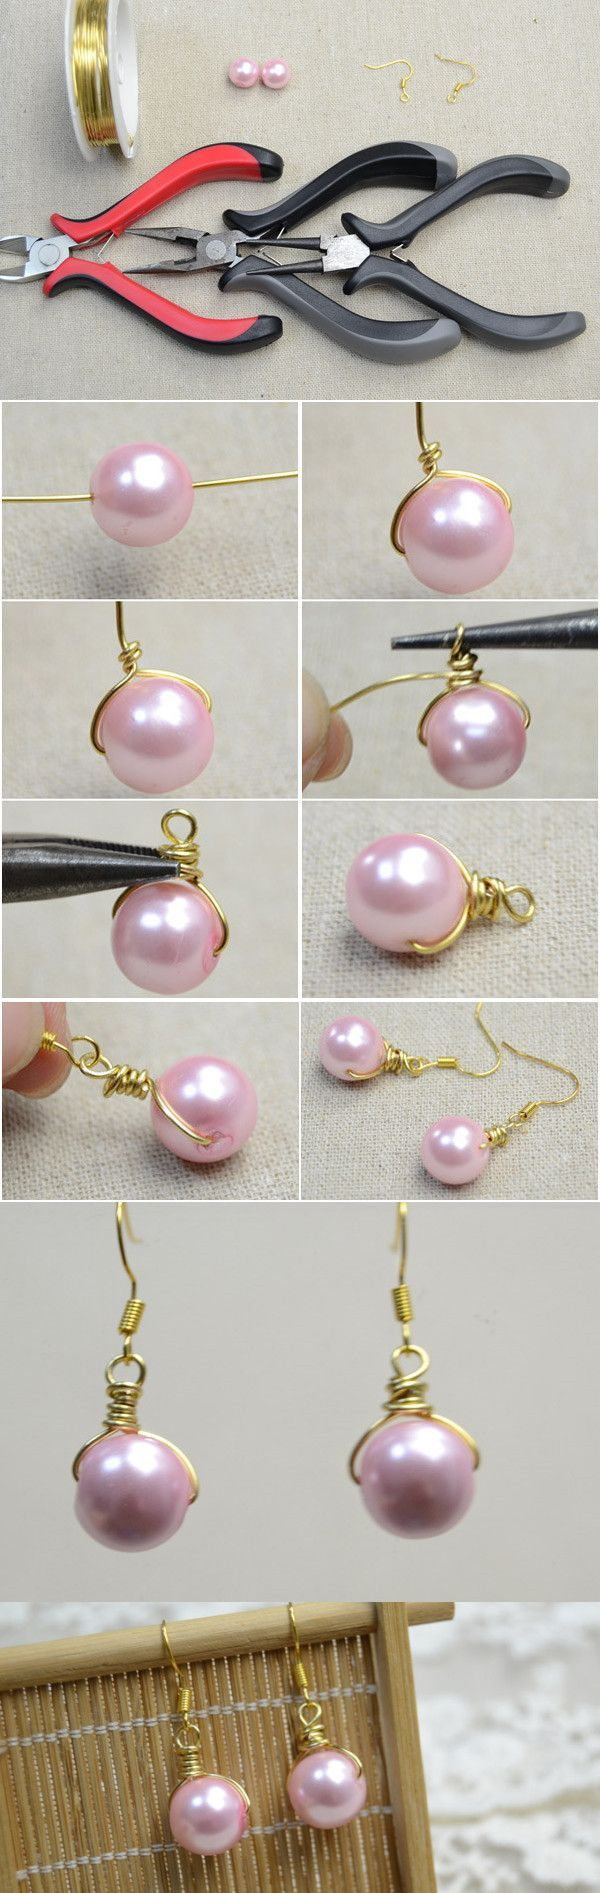 Tutorial DIY Wire Jewelry Image Description How to Make Pearl Drop Earrings with Pink Pearls and Golden Wires